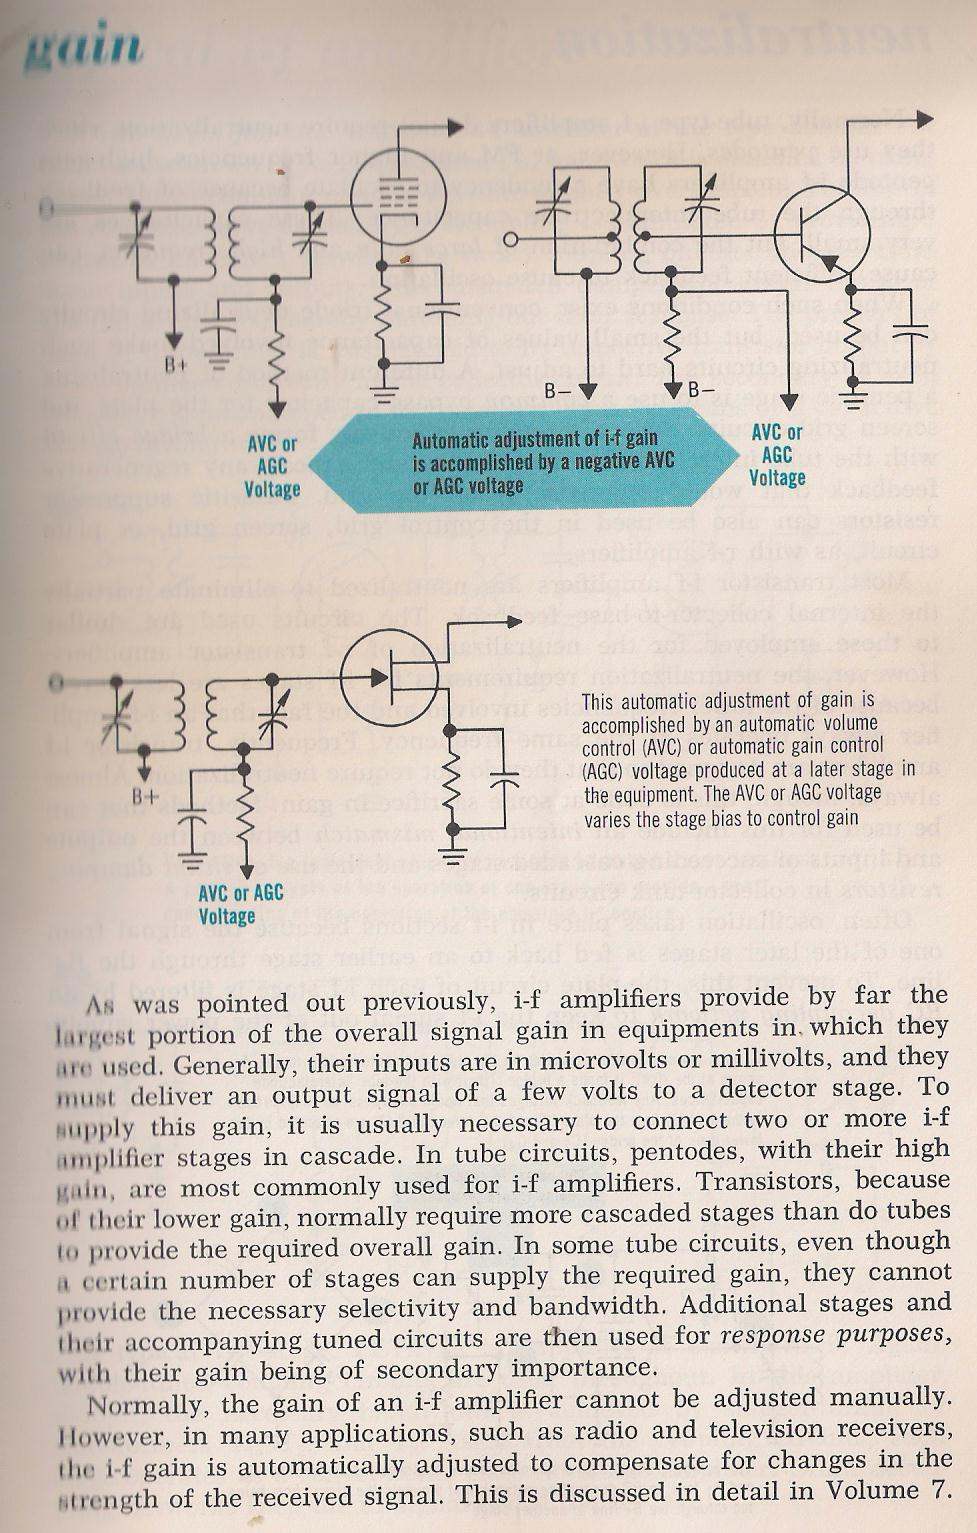 Amplifiers Automatic Volume Control Circuit 068 Practical If Coupling Circuits By Larry E Gugle K4rfe 069 Frequency Response Of Television